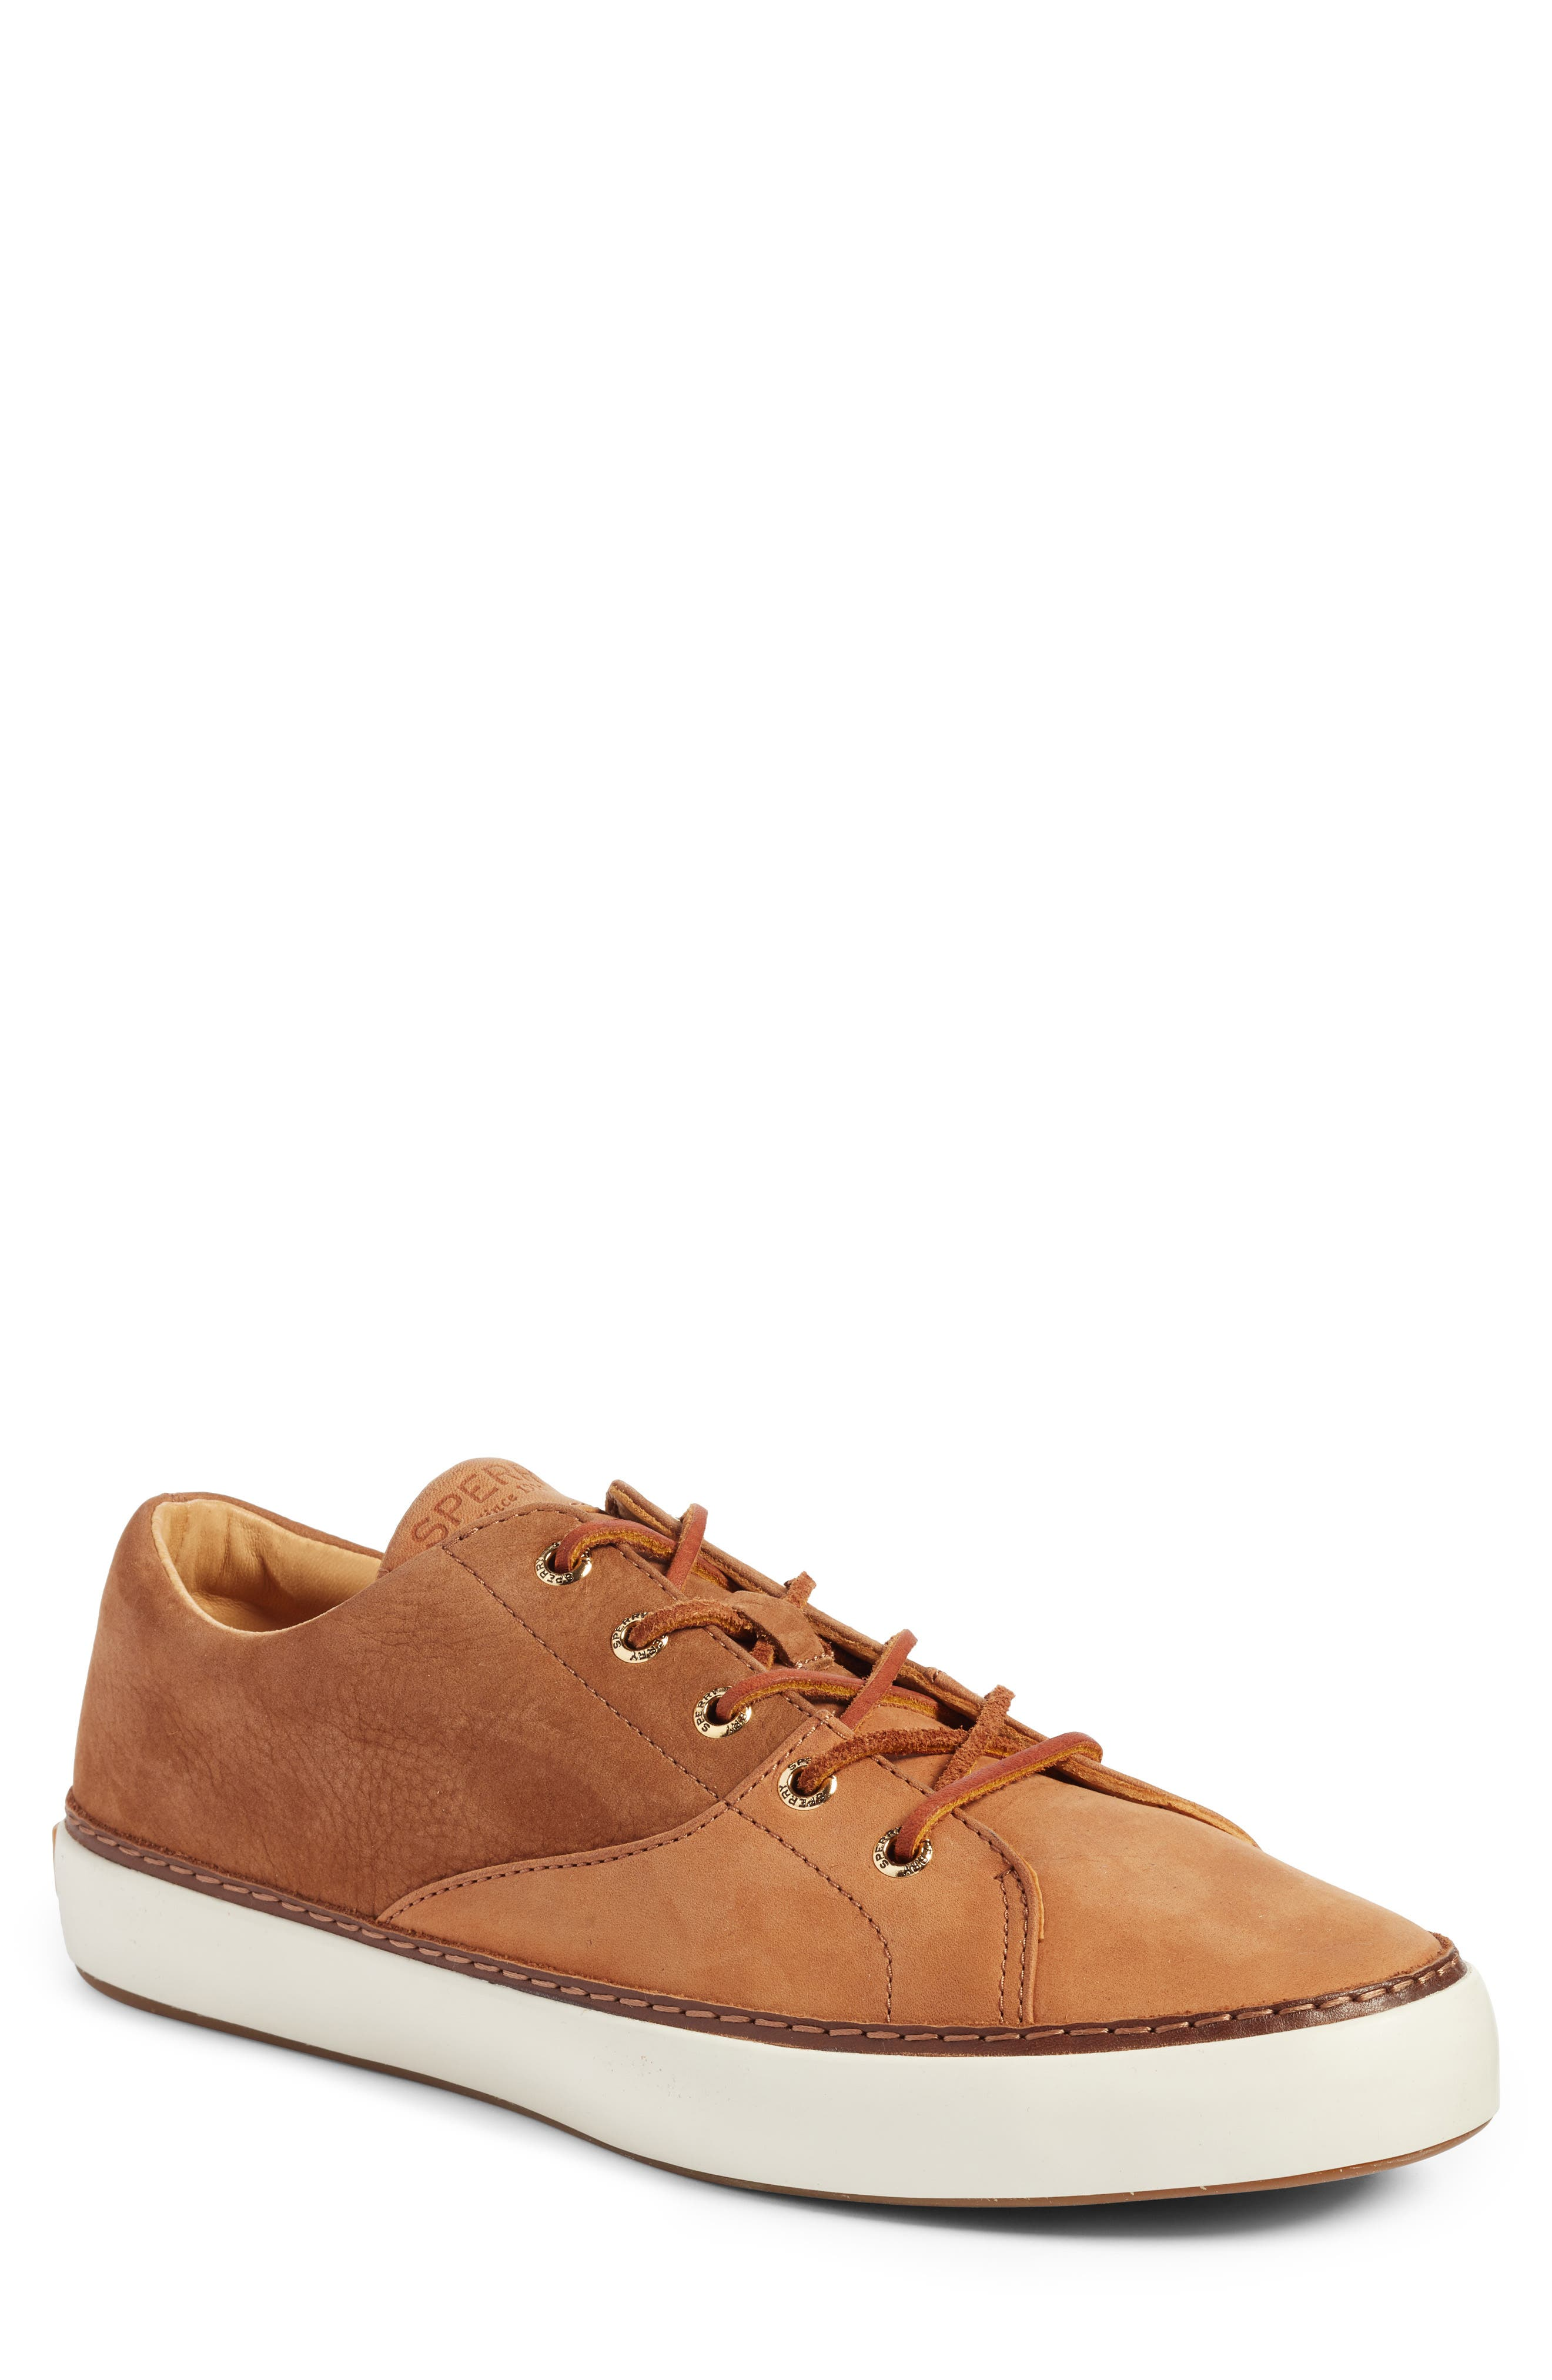 Gold Cup Haven Sneaker,                             Main thumbnail 1, color,                             TAN LEATHER